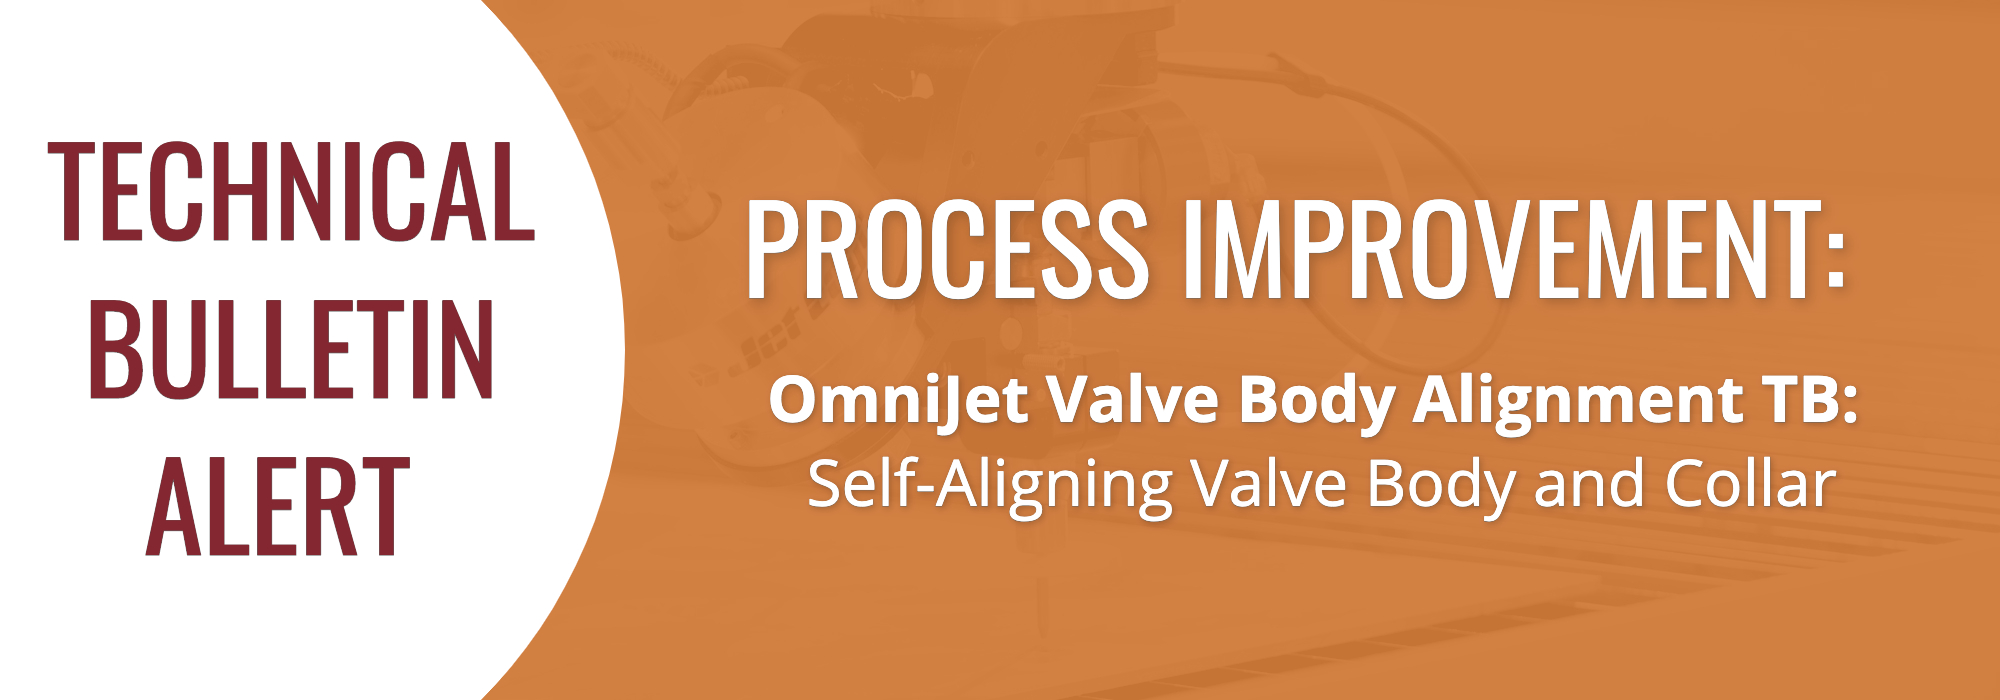 Technical Bulletin_ OmniJet Valve Body Alignment